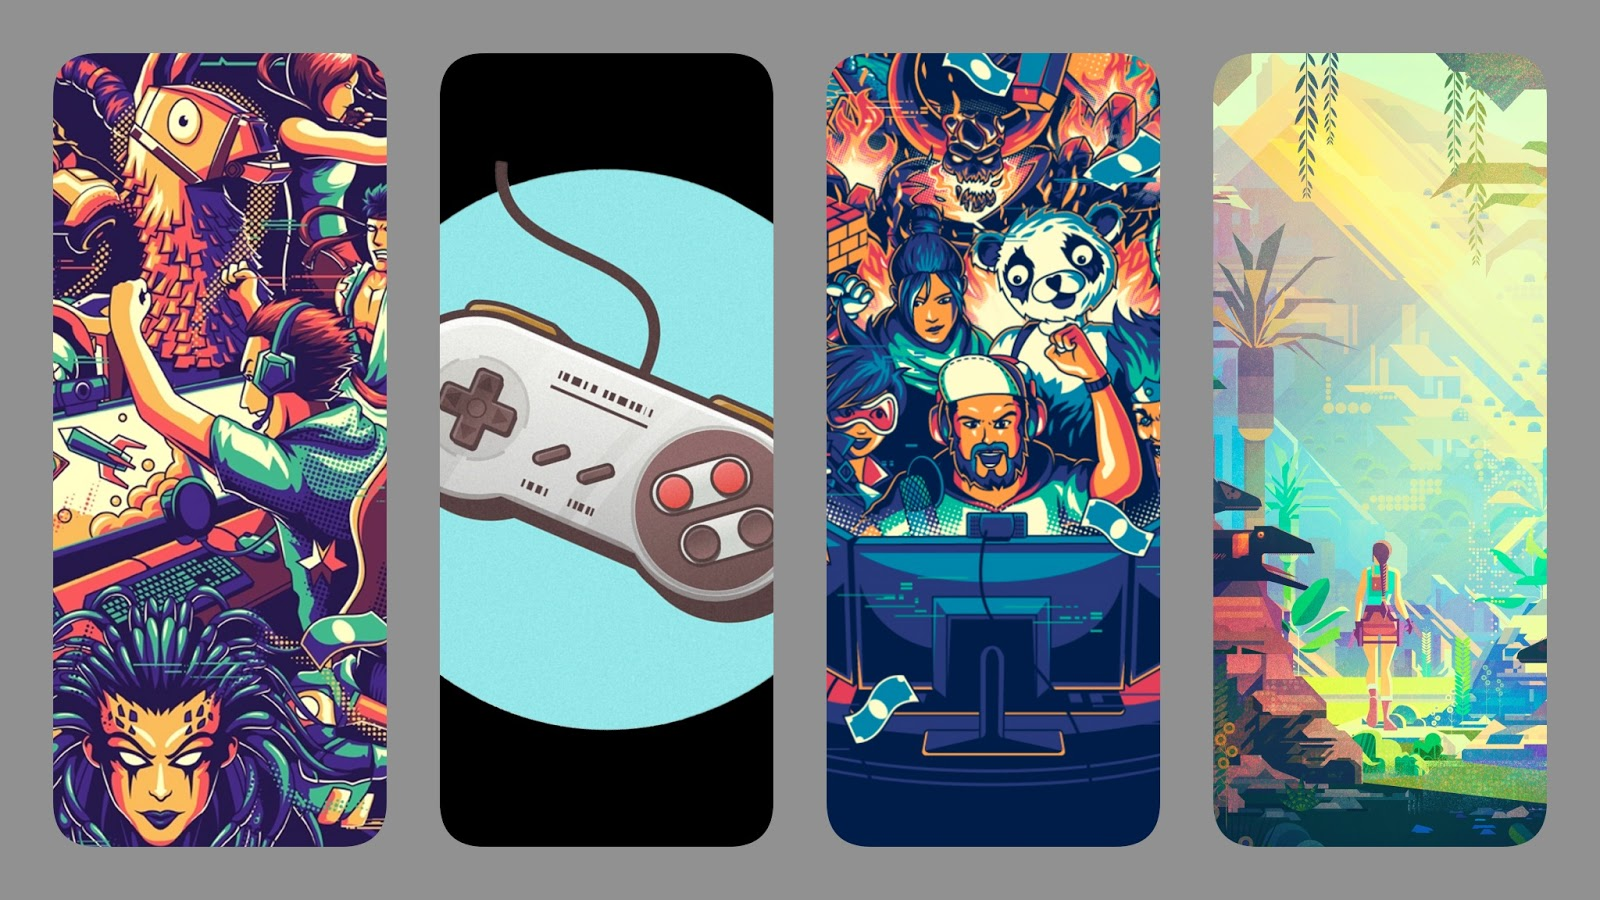 Phone wallpaper collection - Games